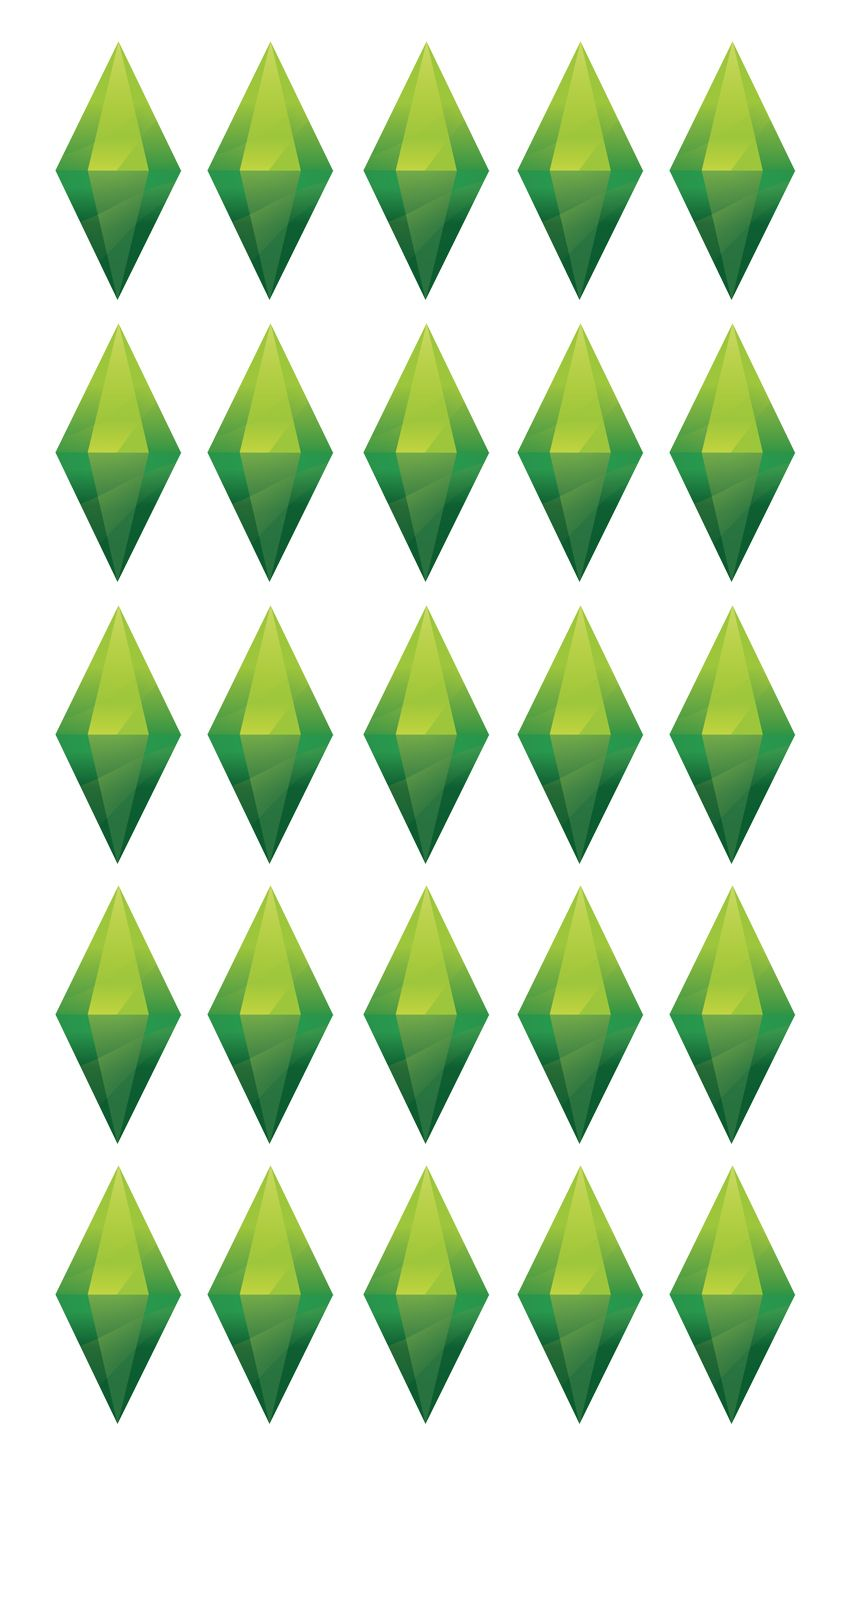 Plumbob Thesims IPhone 4 5 6 Wallpaper Check Out More Beautiful Backgrounds At Prettywallpaper